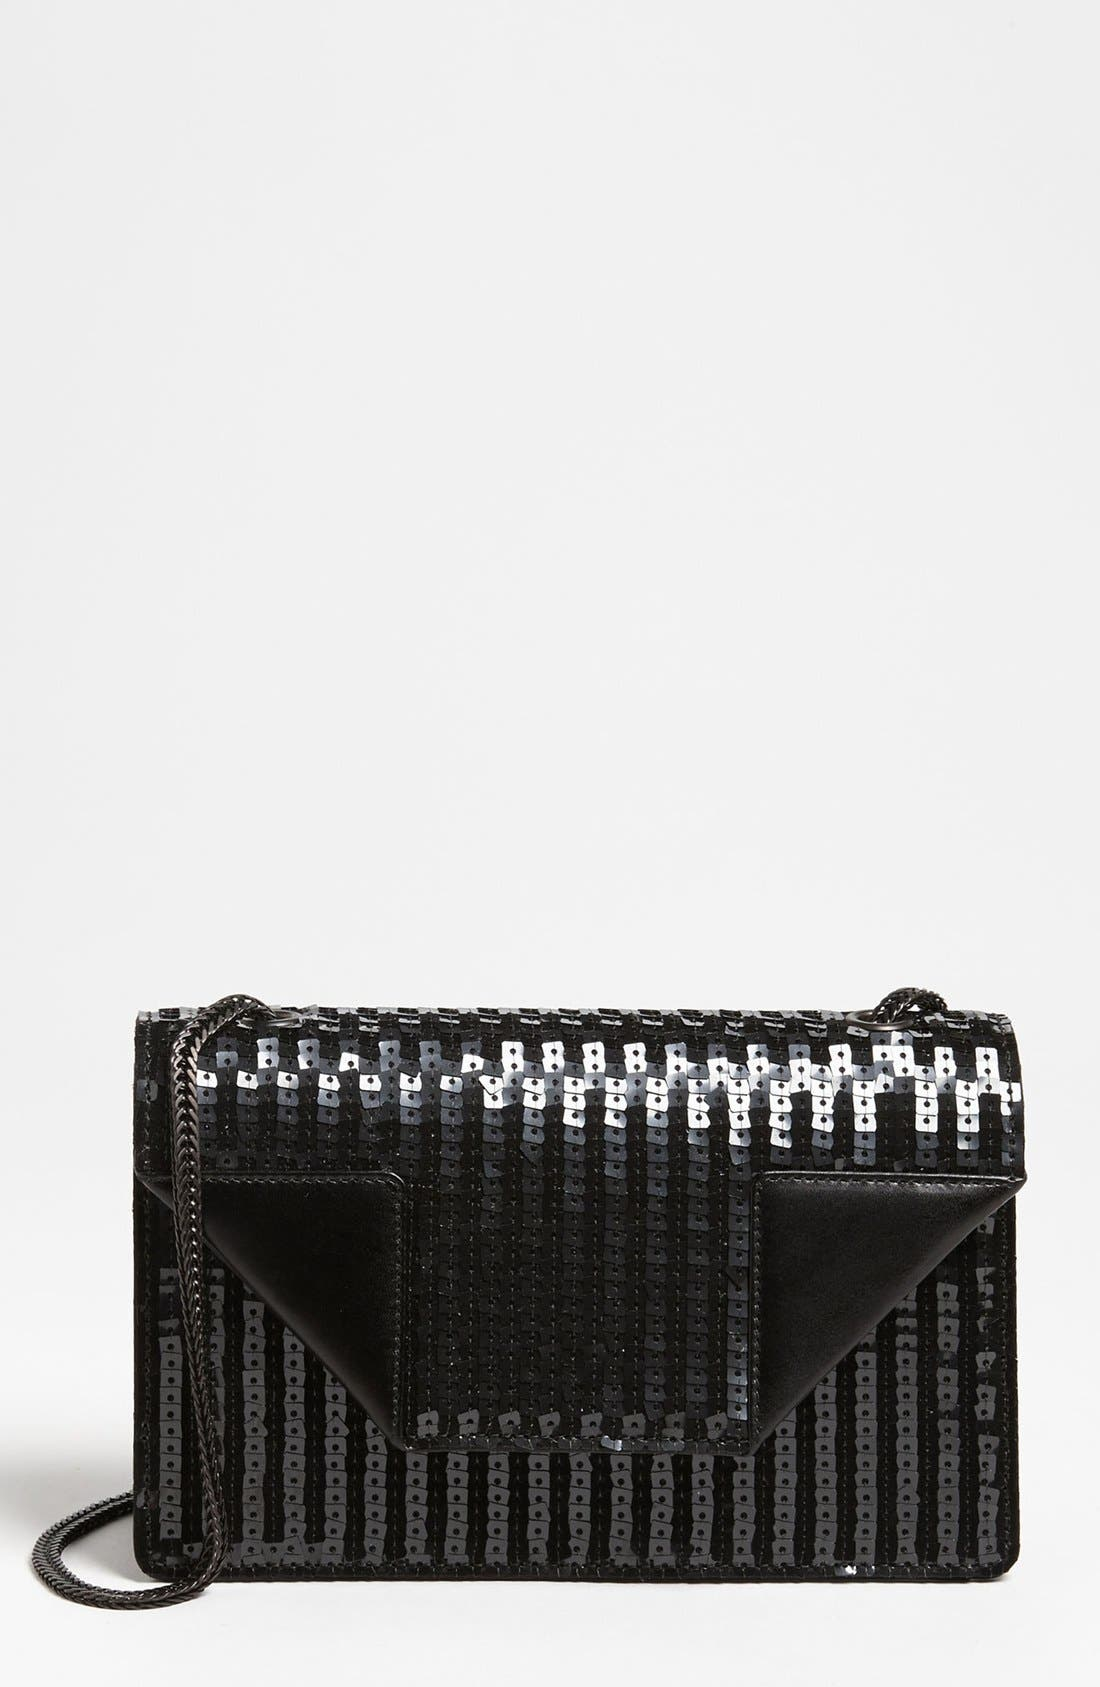 Alternate Image 1 Selected - Saint Laurent 'Betty' Sequin Leather Shoulder Bag